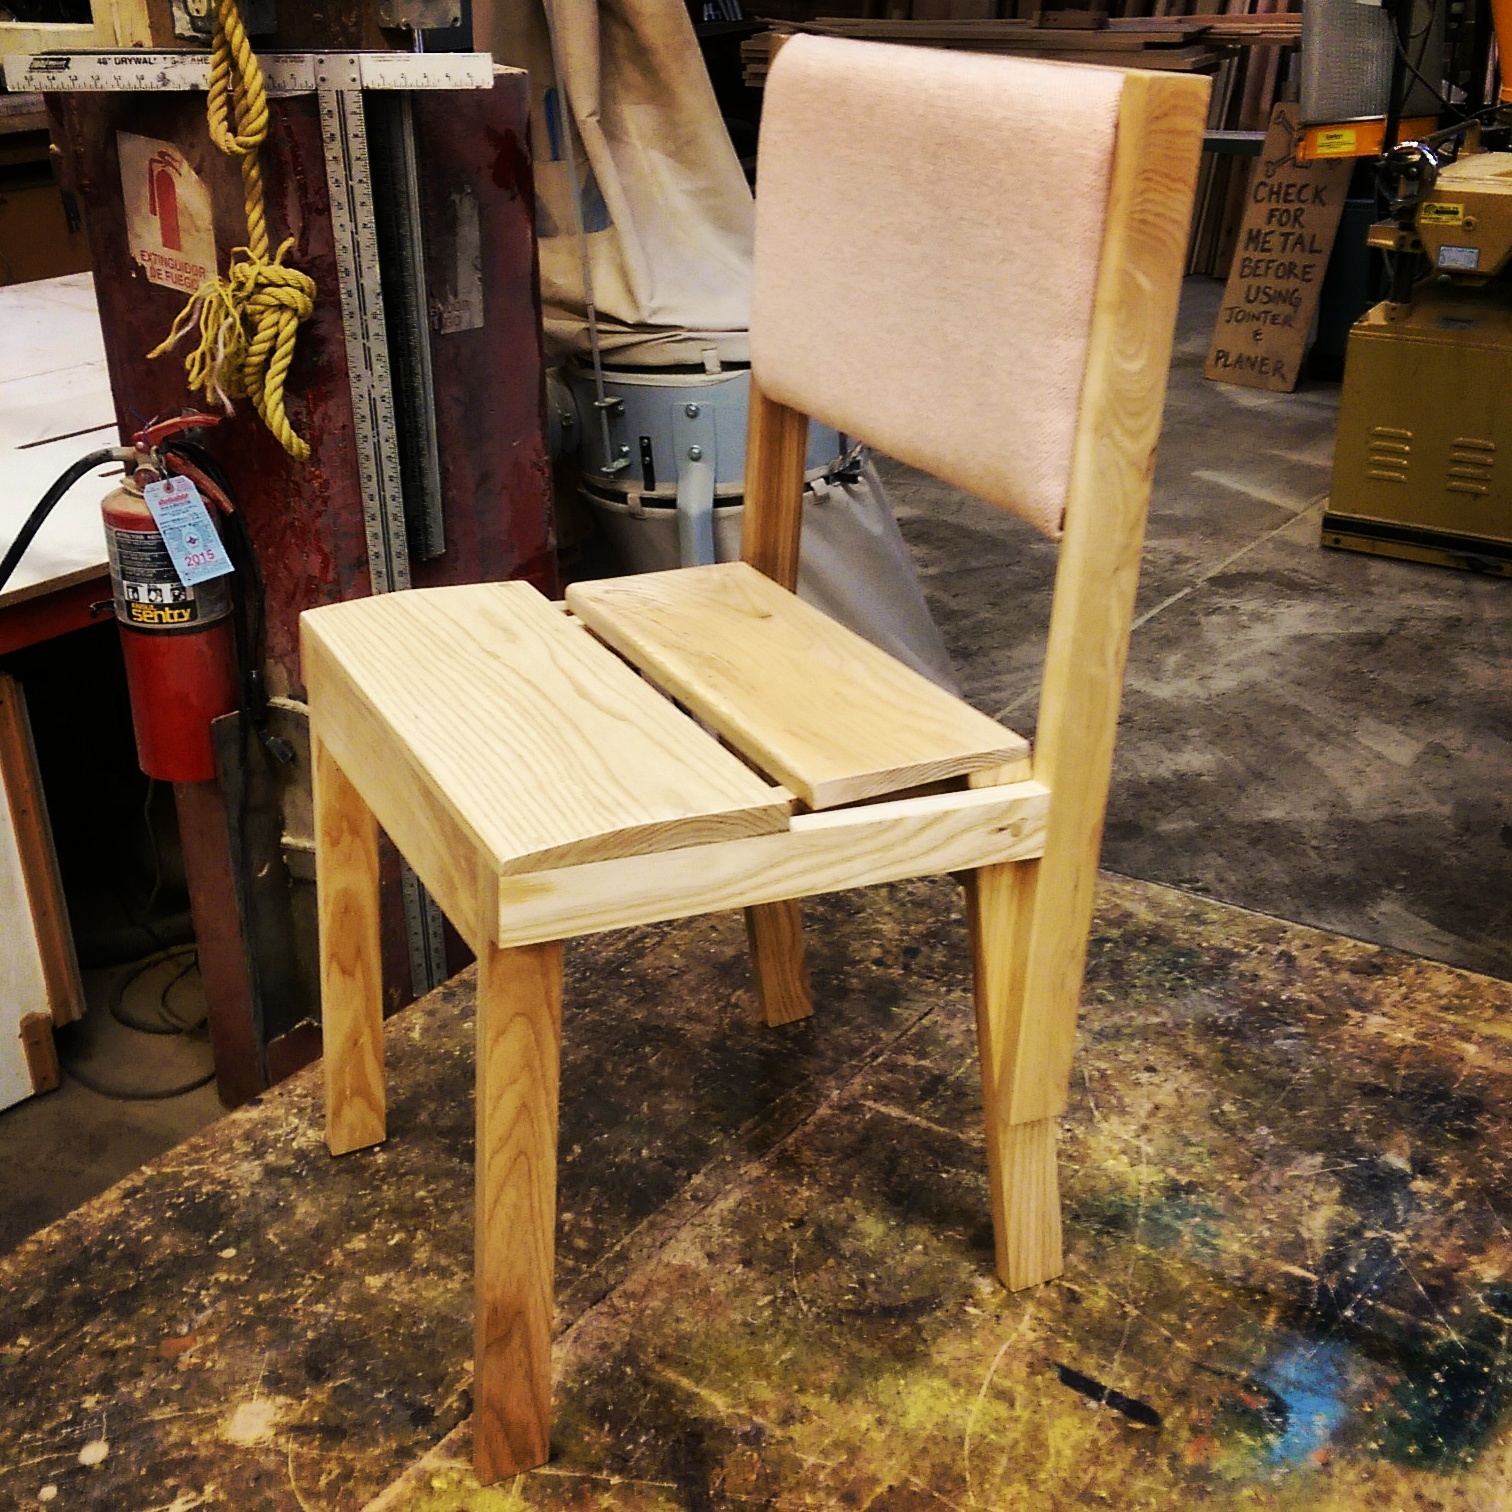 Provisional Chair, final prototype with upholstered backrest and ash frame and seat.